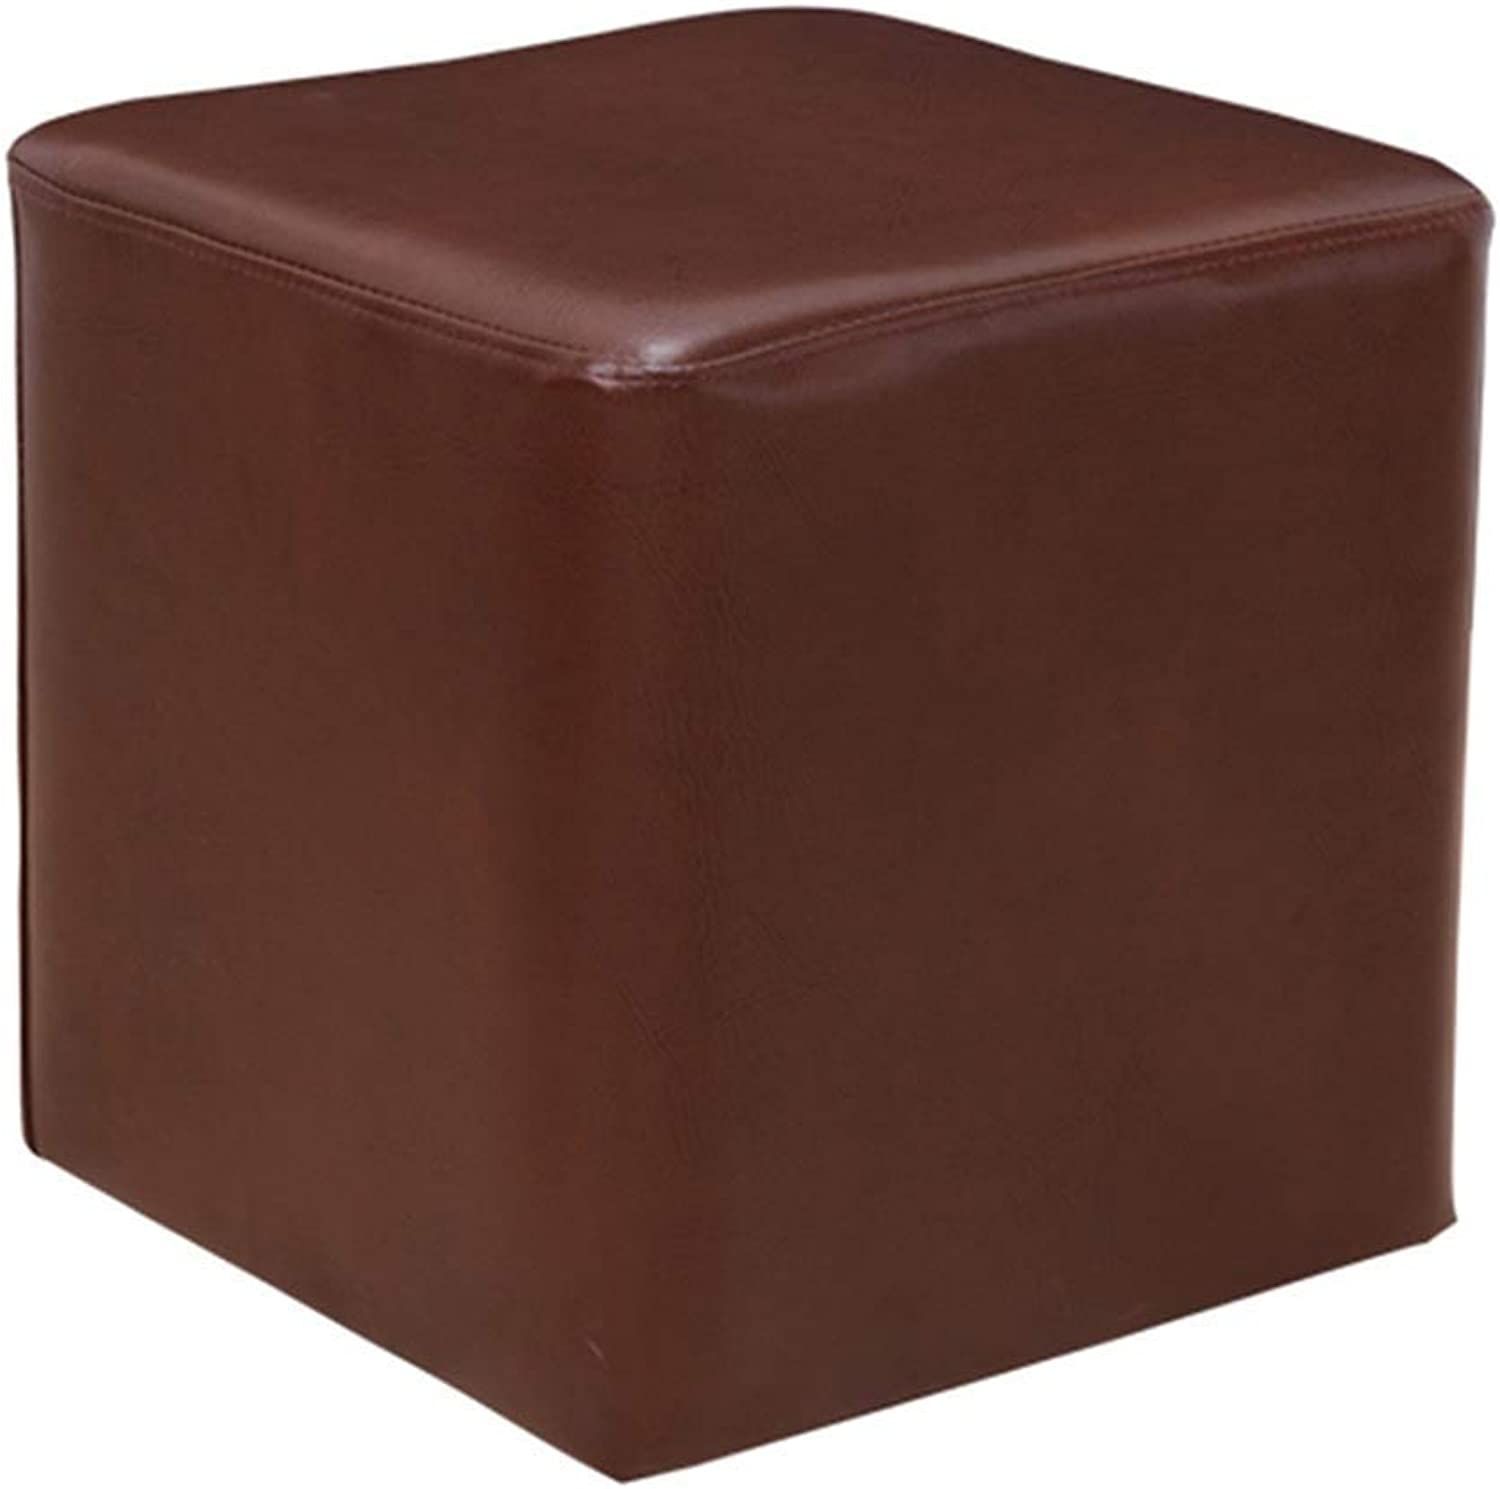 Footstool Simple Multifunction Household Sofa Stool Small Square Stool Change shoes Bench Dressing Stool GMING (color   Brown, Size   35x35x36cm)